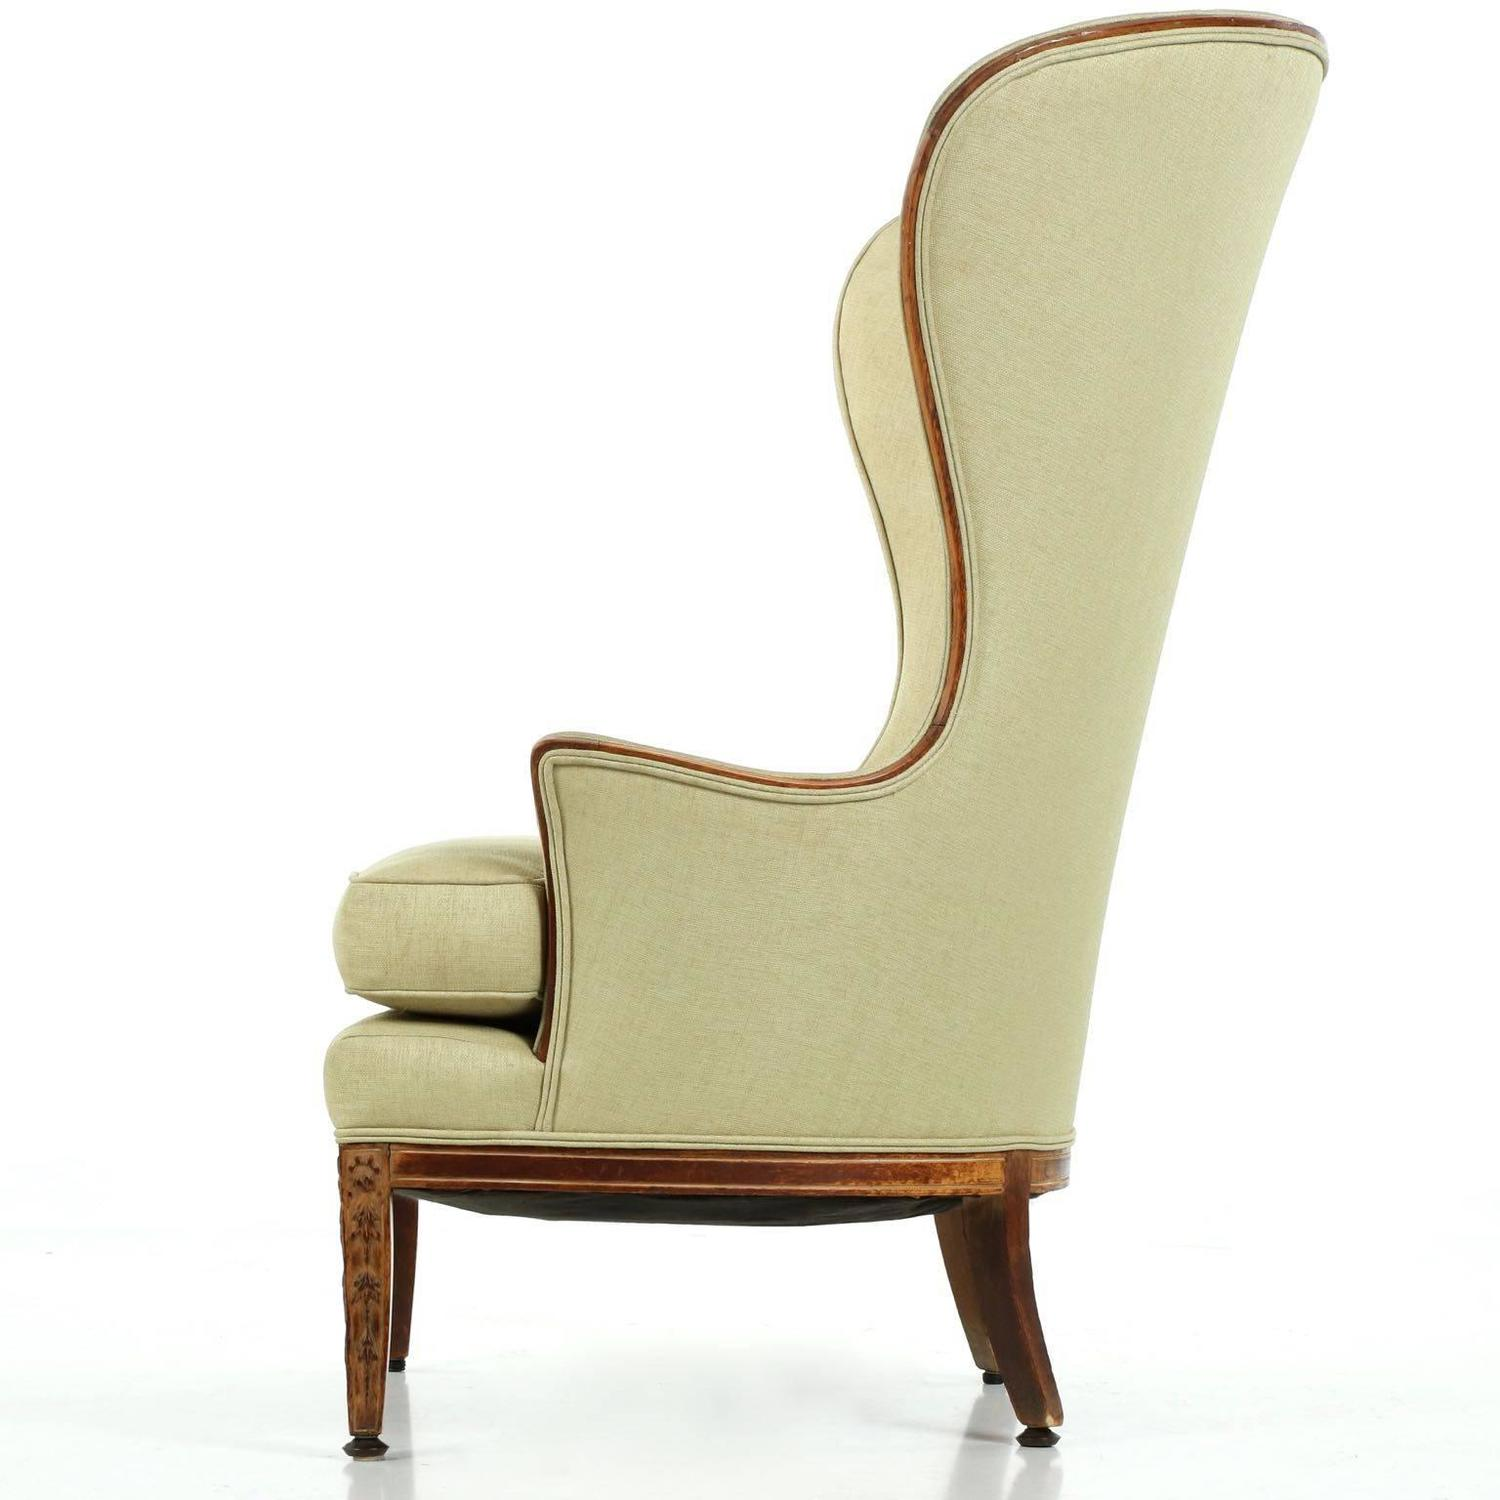 French Provincial Chairs Pictures to Pin on Pinterest